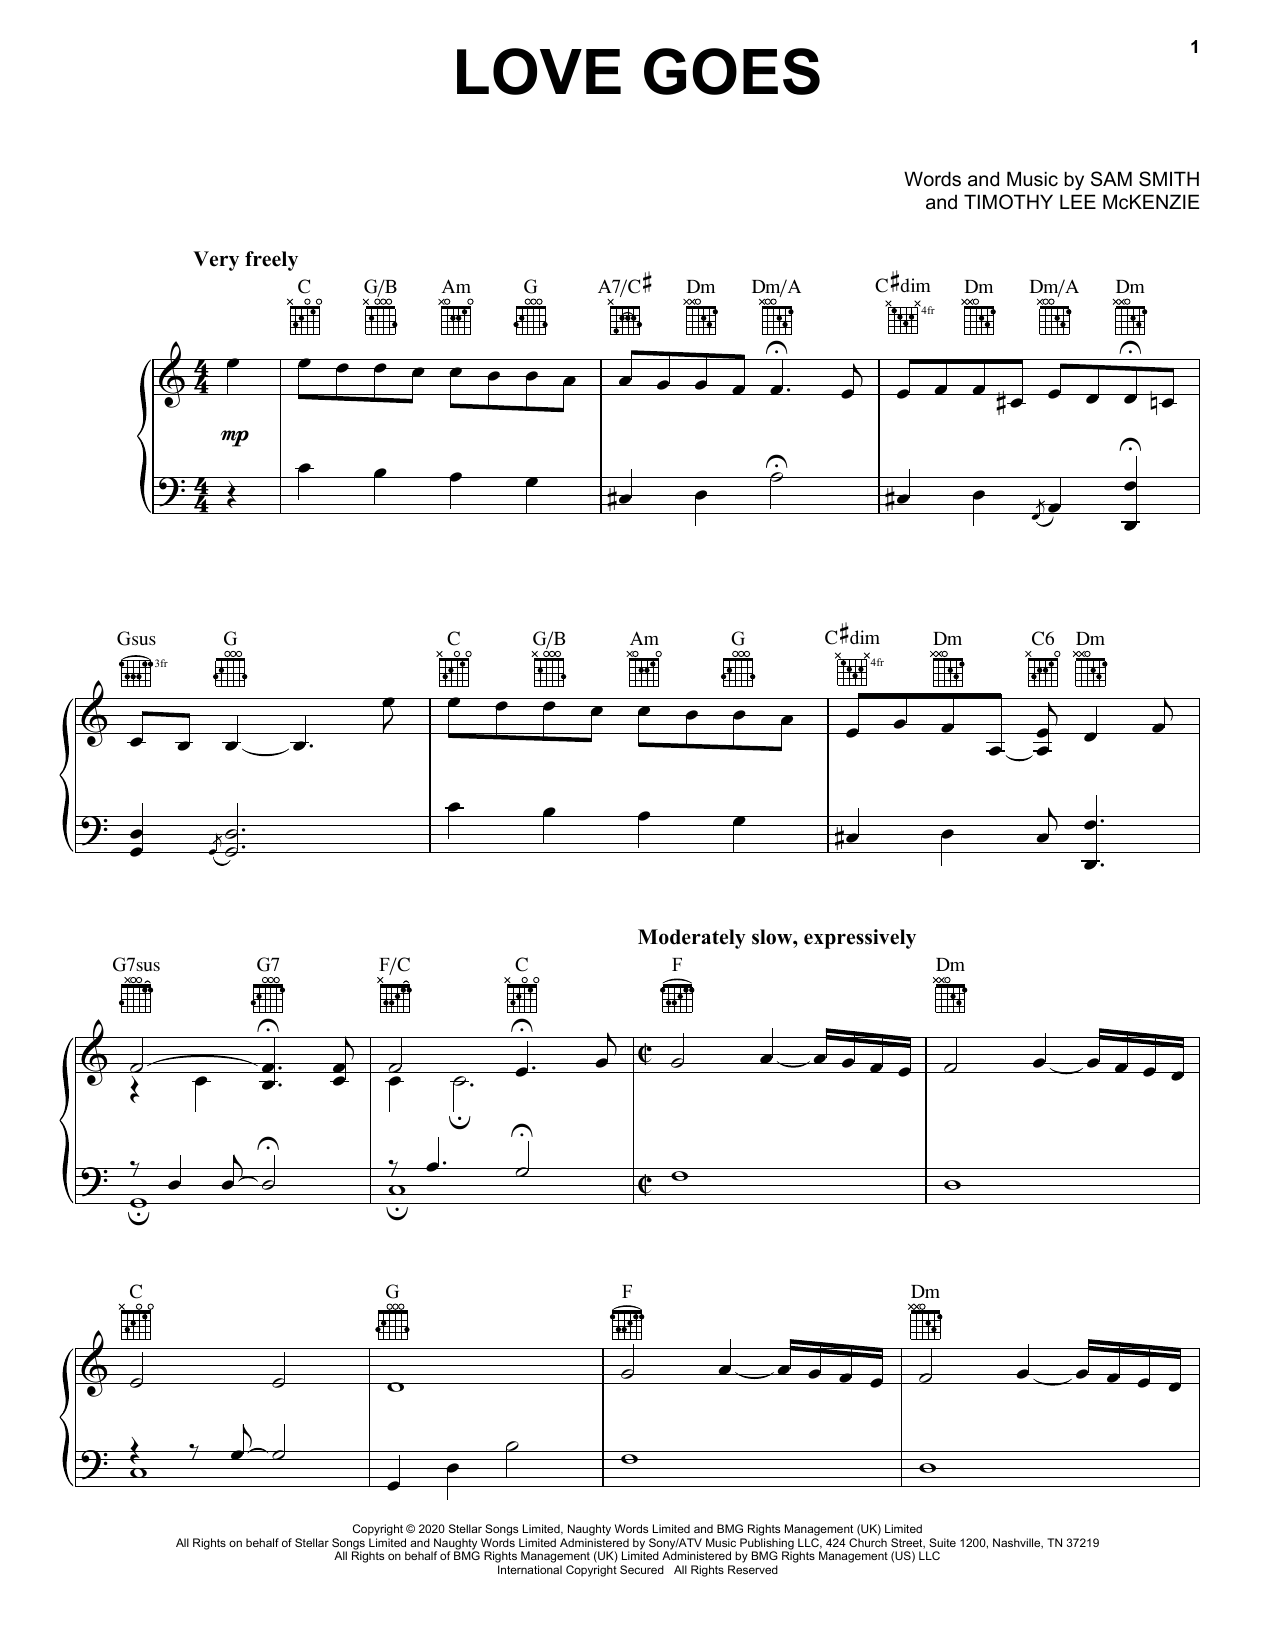 Sam Smith Love Goes (feat. Labrinth) sheet music notes and chords. Download Printable PDF.